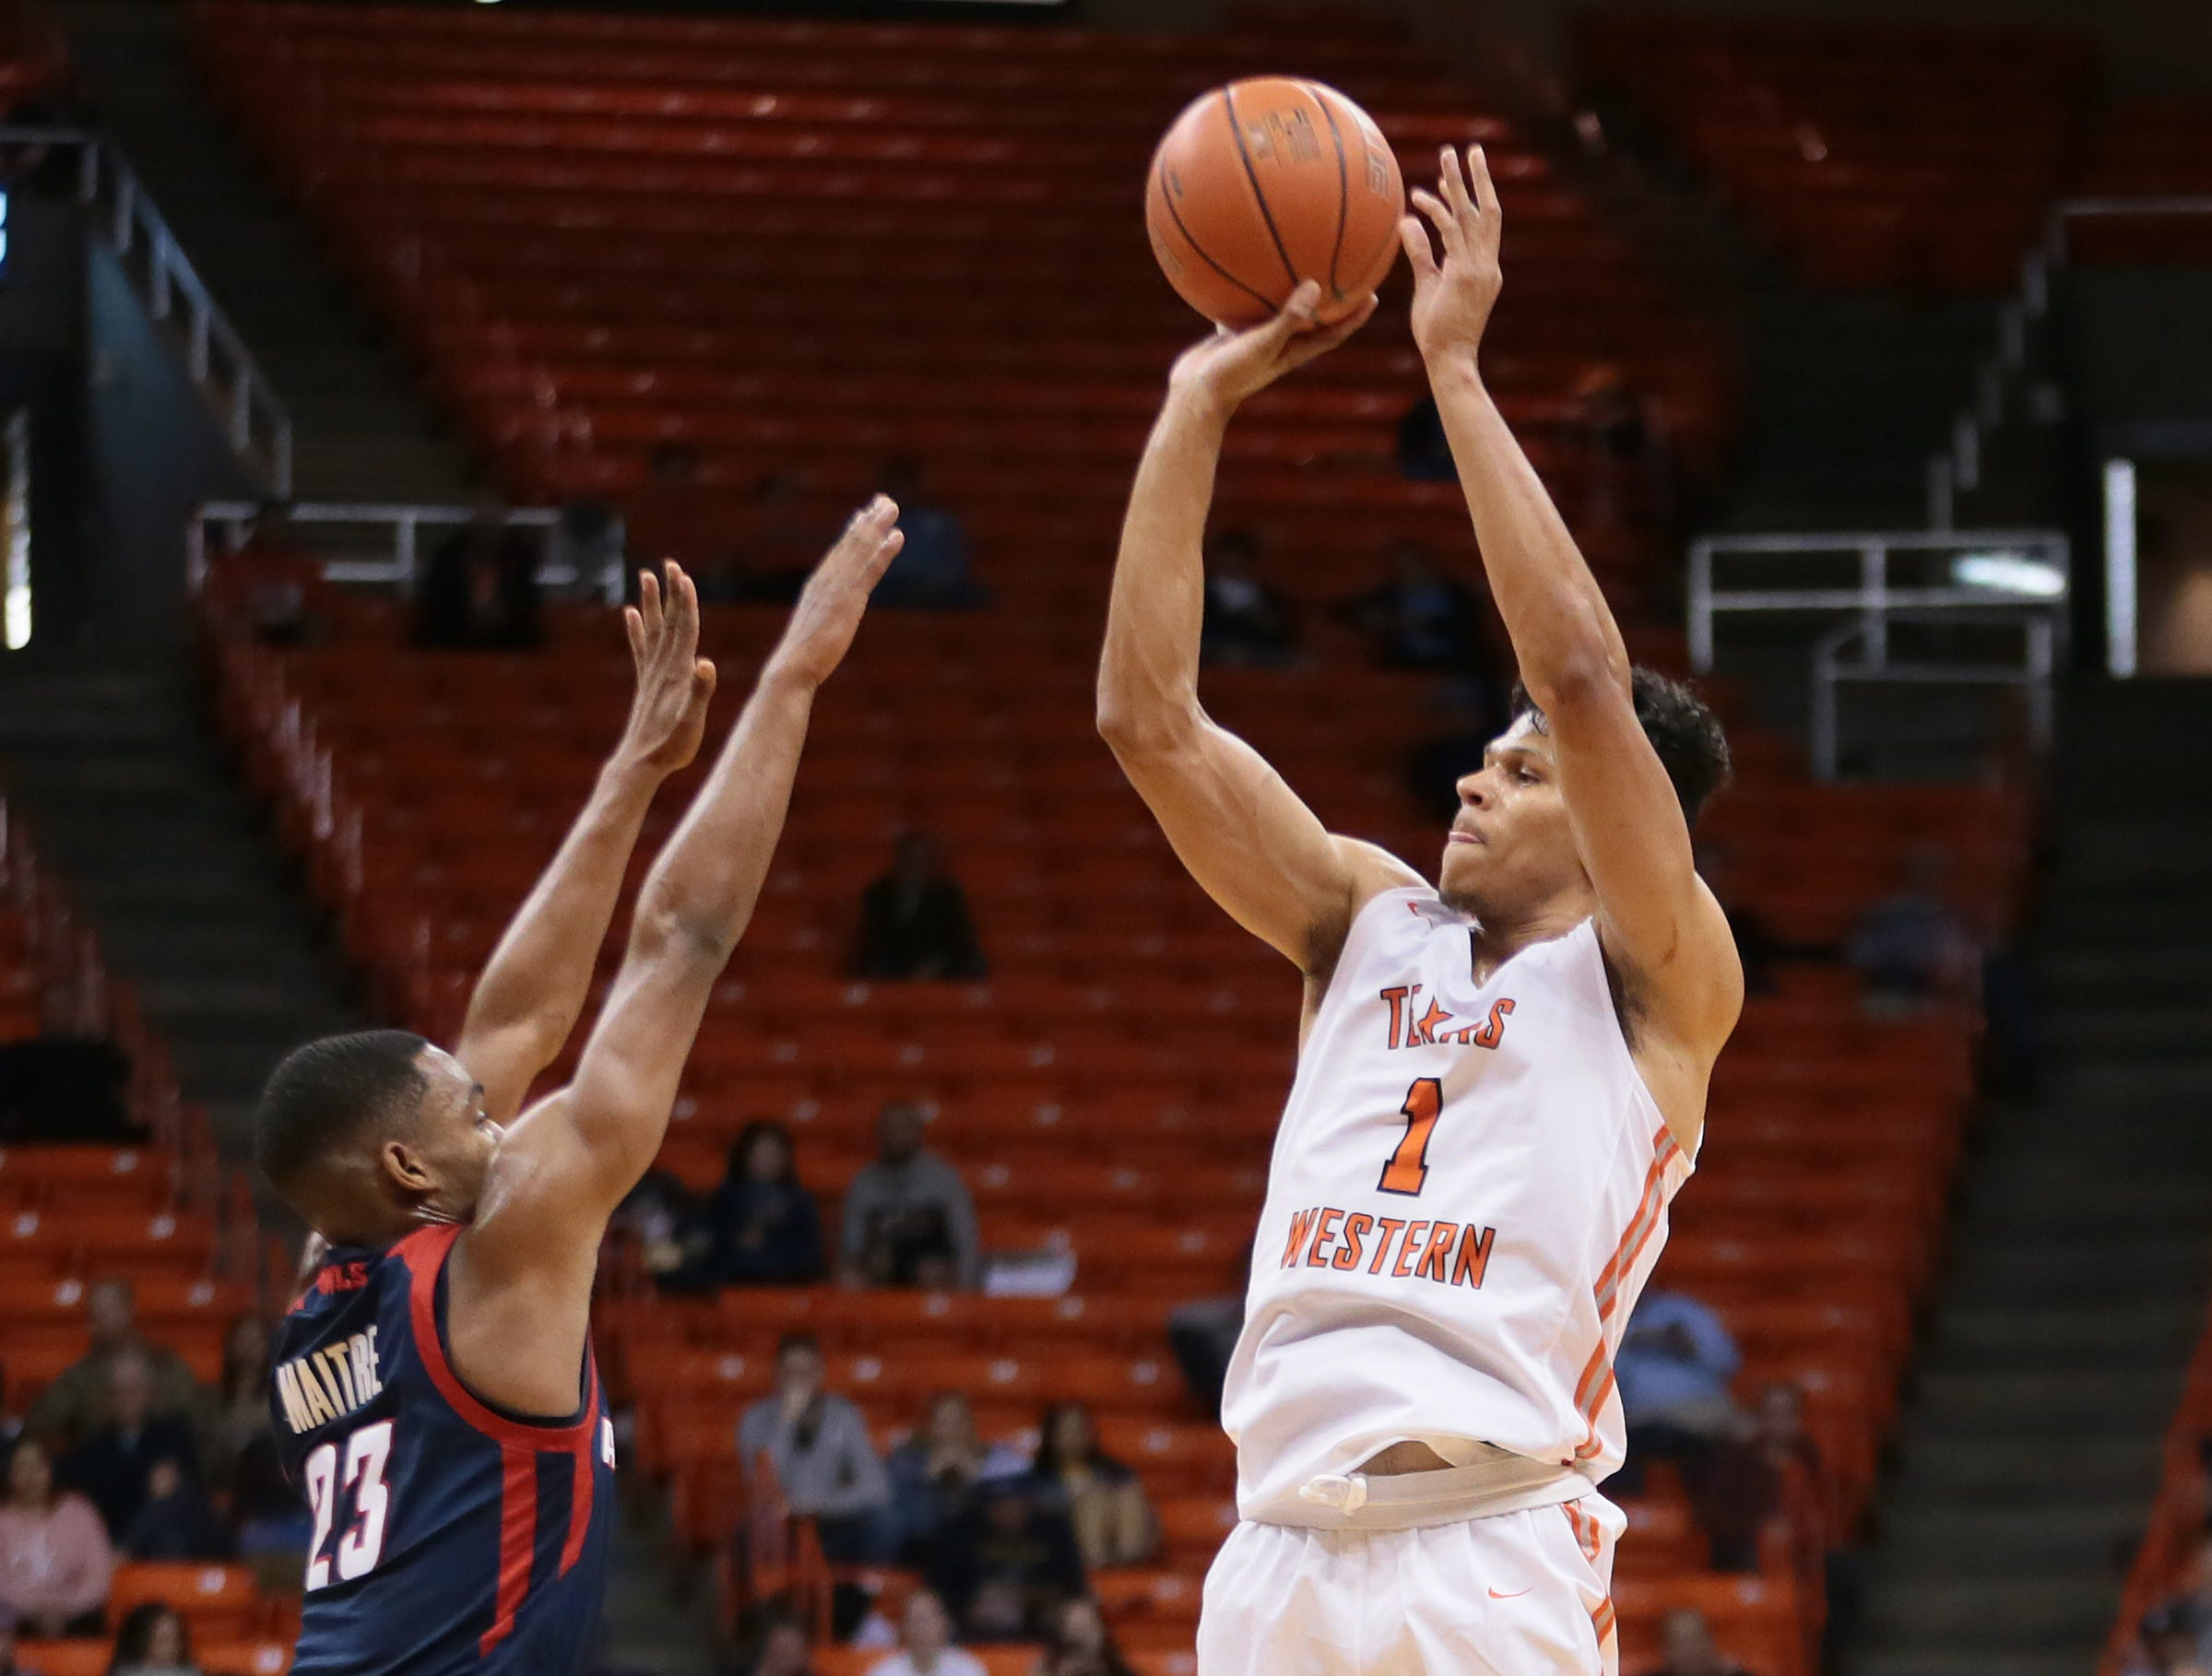 UTEP dropped one Thursday night to Florida Atlantic 61-48 at the Don Haskins Center.